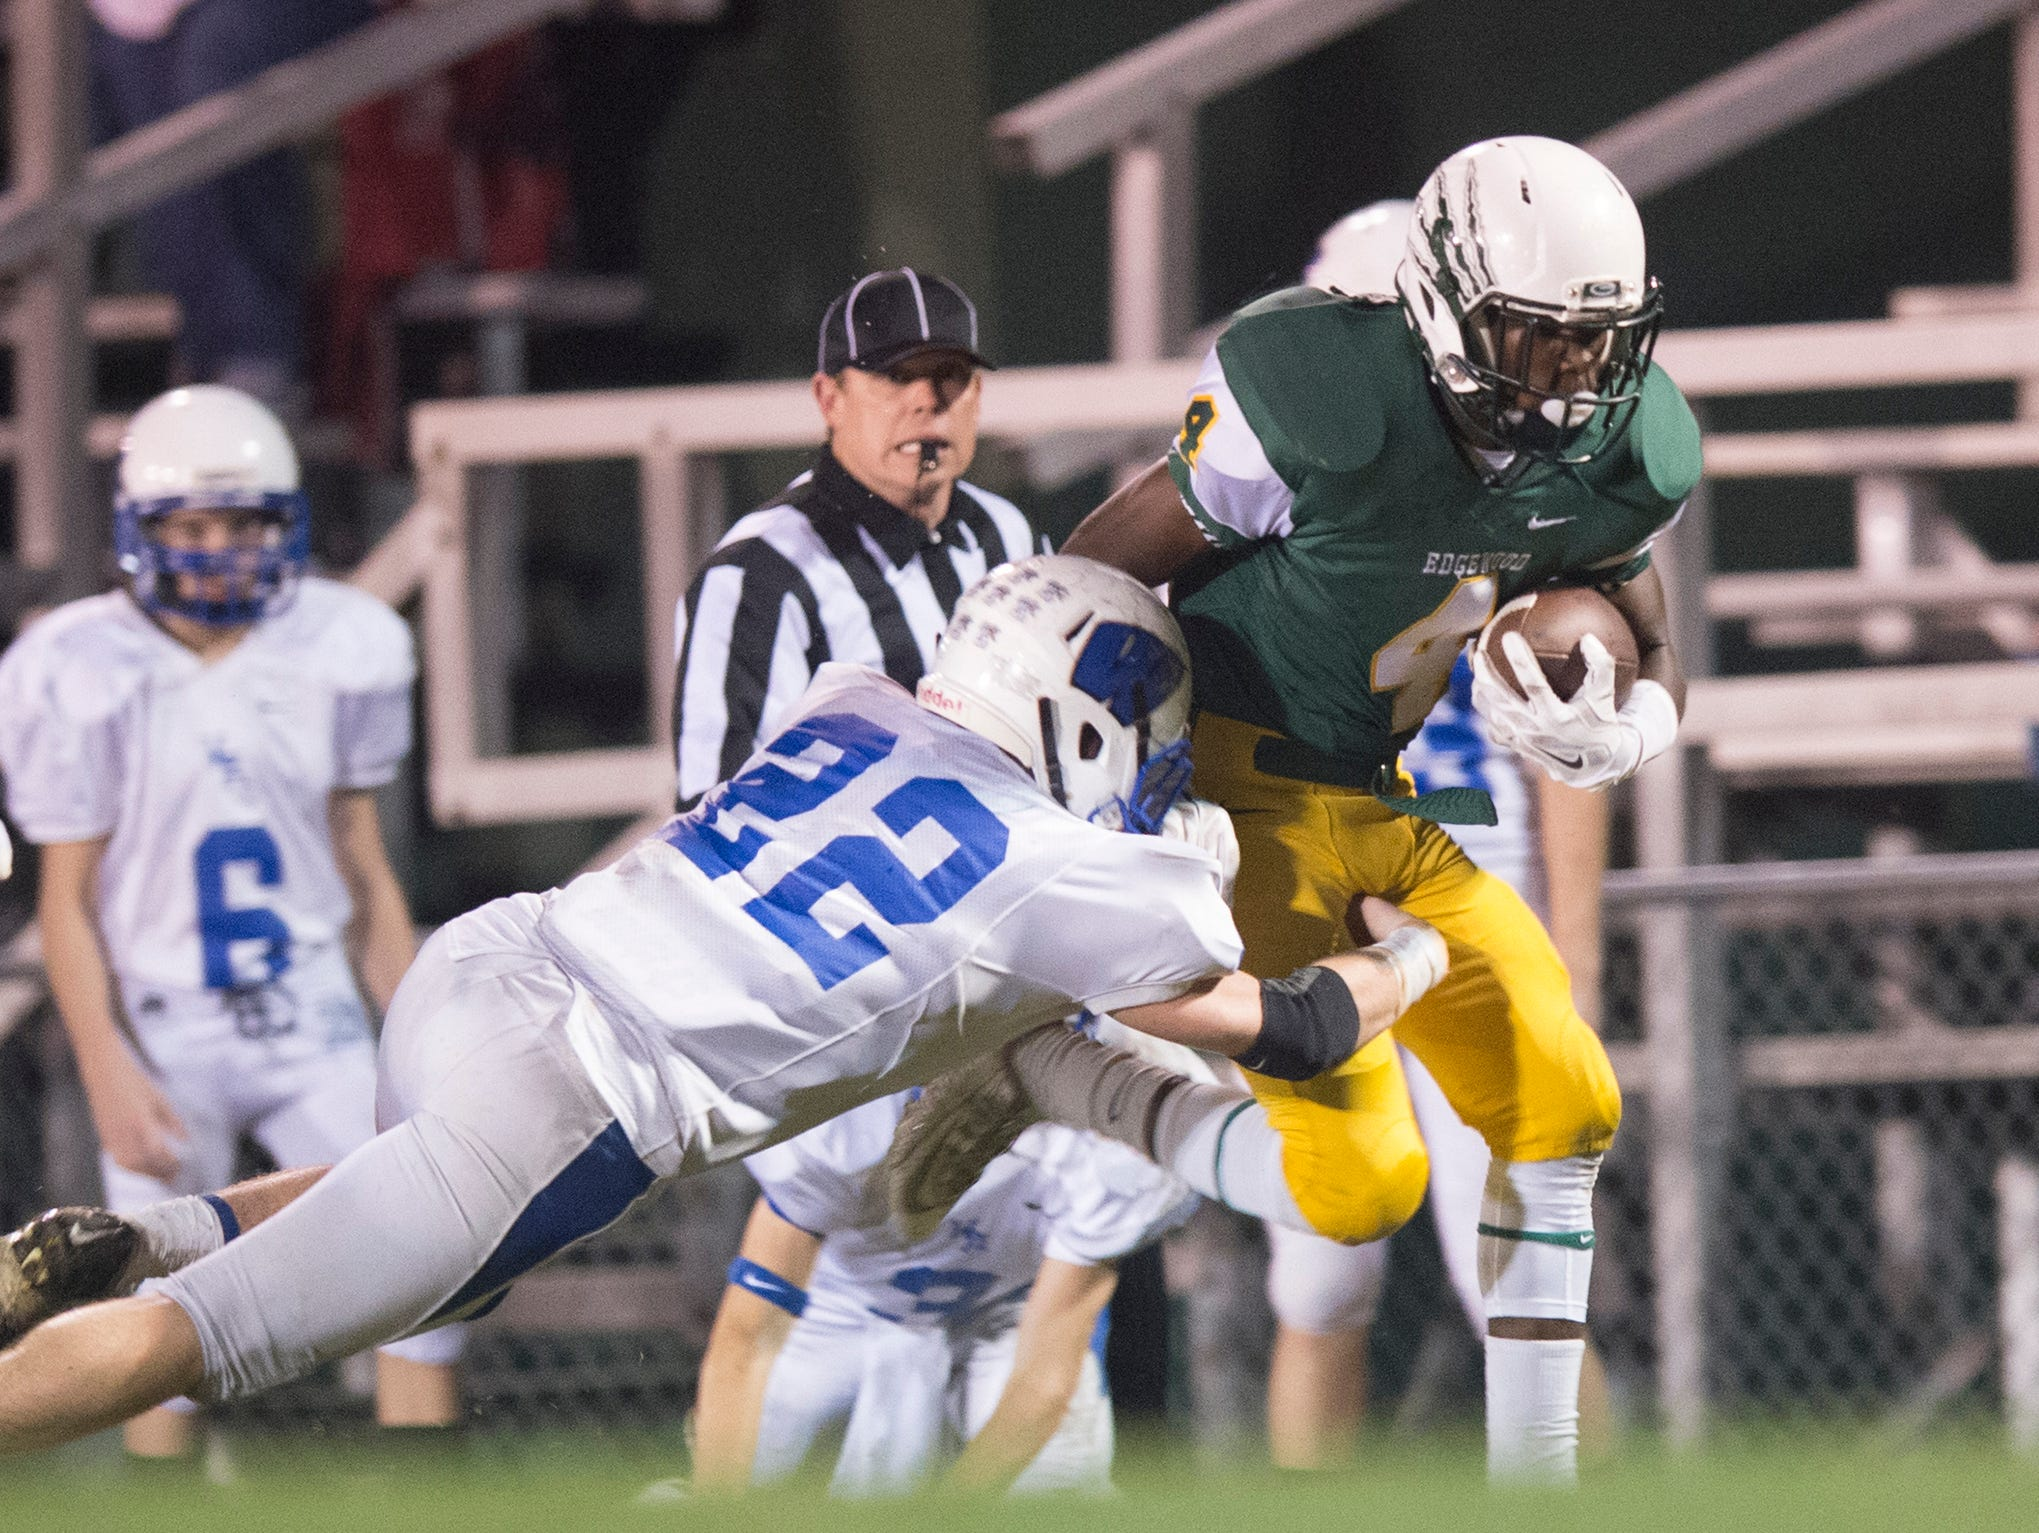 Edgewood's Maurice Young (4) breaks a tackle attempt by Wilcox's Russ Swanner (22) during the AISA playoff football game at Edgewood Academy on Thursday, Nov. 5, 2015.